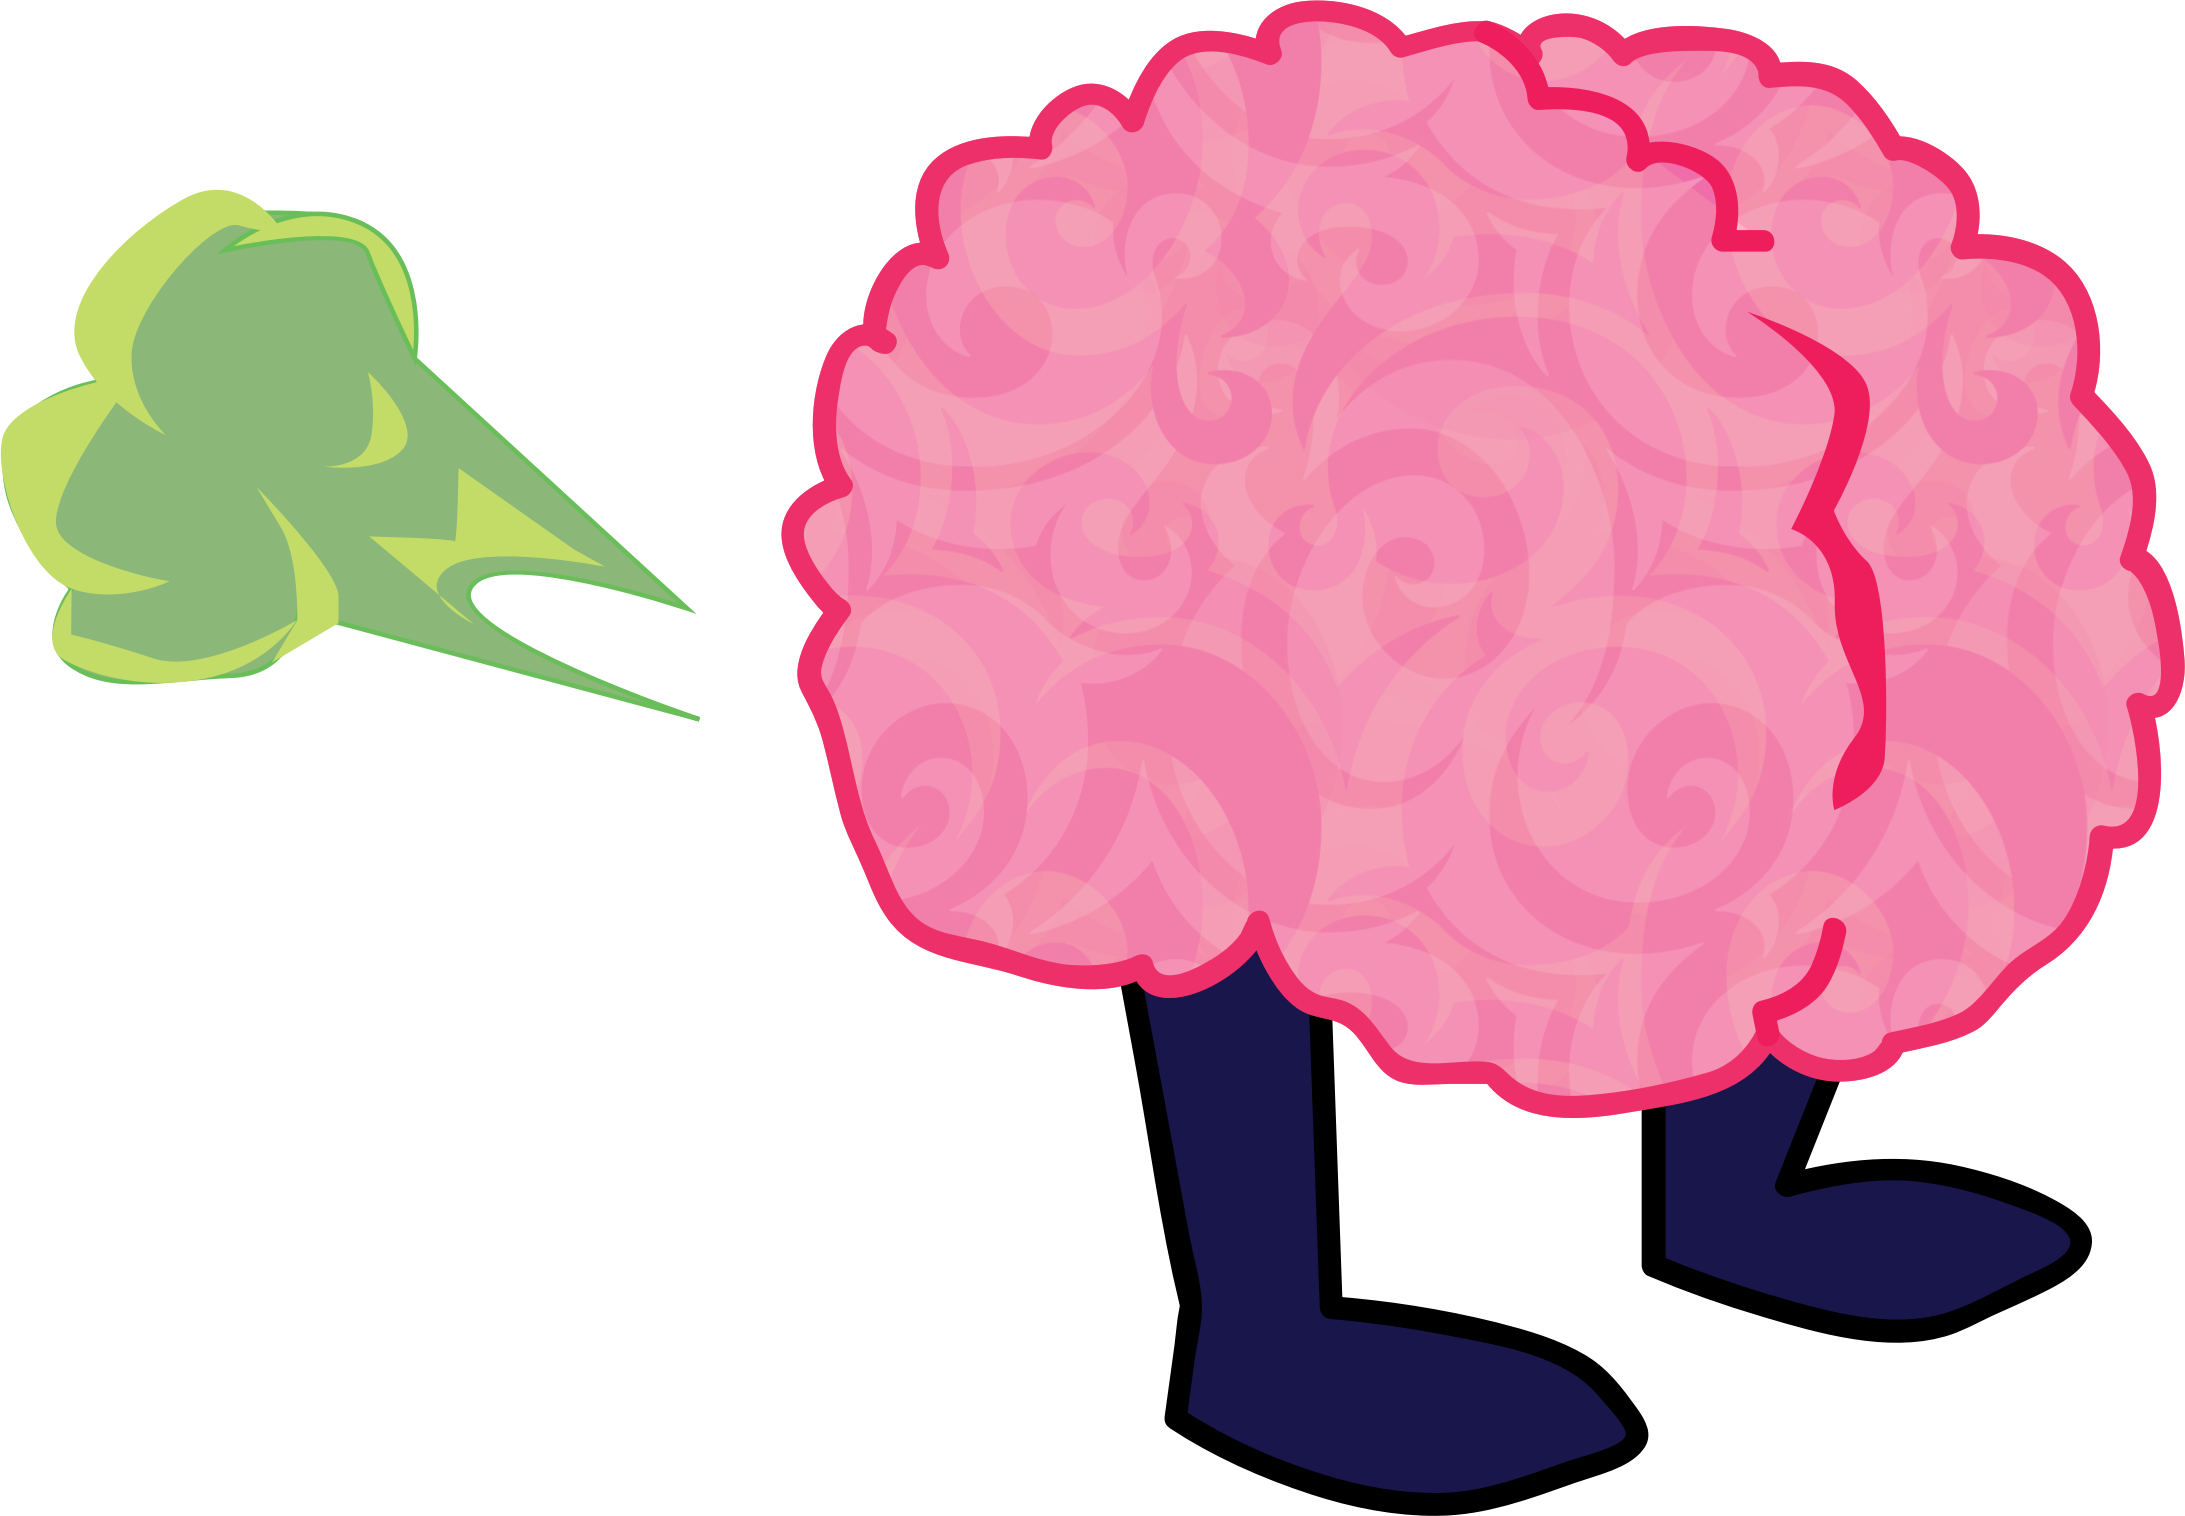 brain cartoon png